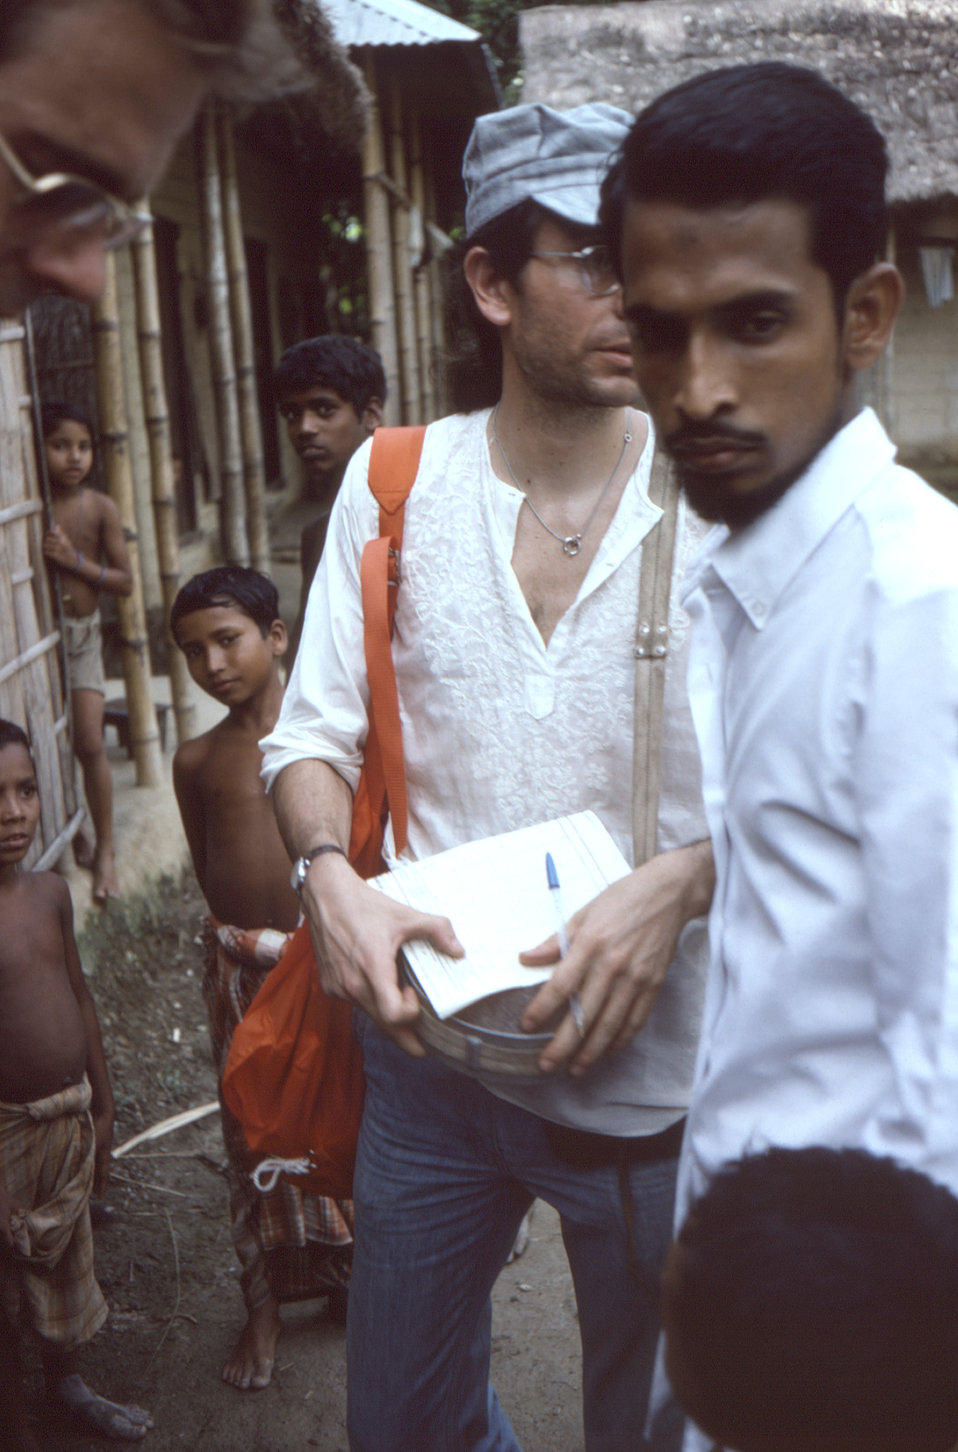 Still in the Sylet District of north-eastern Bangladesh, was Dr. Michael Schwartz, along with his translator as they were in the process of